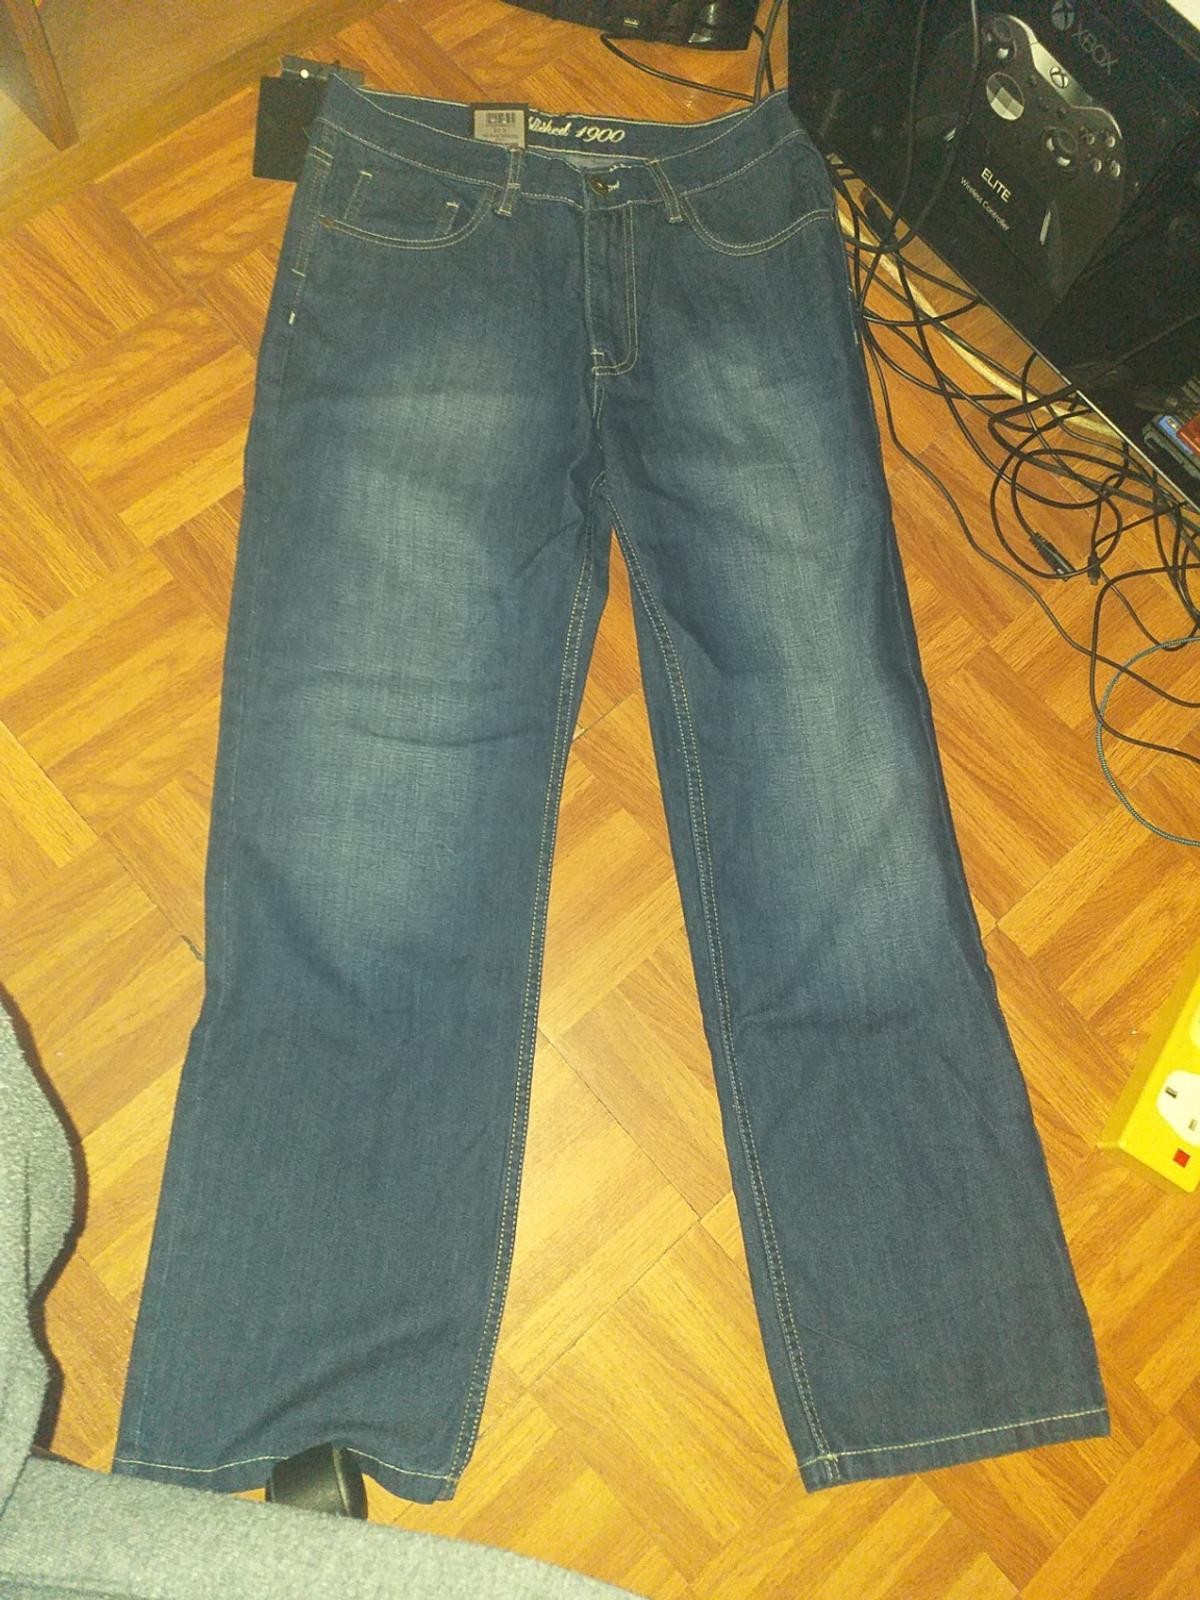 Austin Reed Denim Jeans In M30 Salford For 20 00 For Sale Shpock